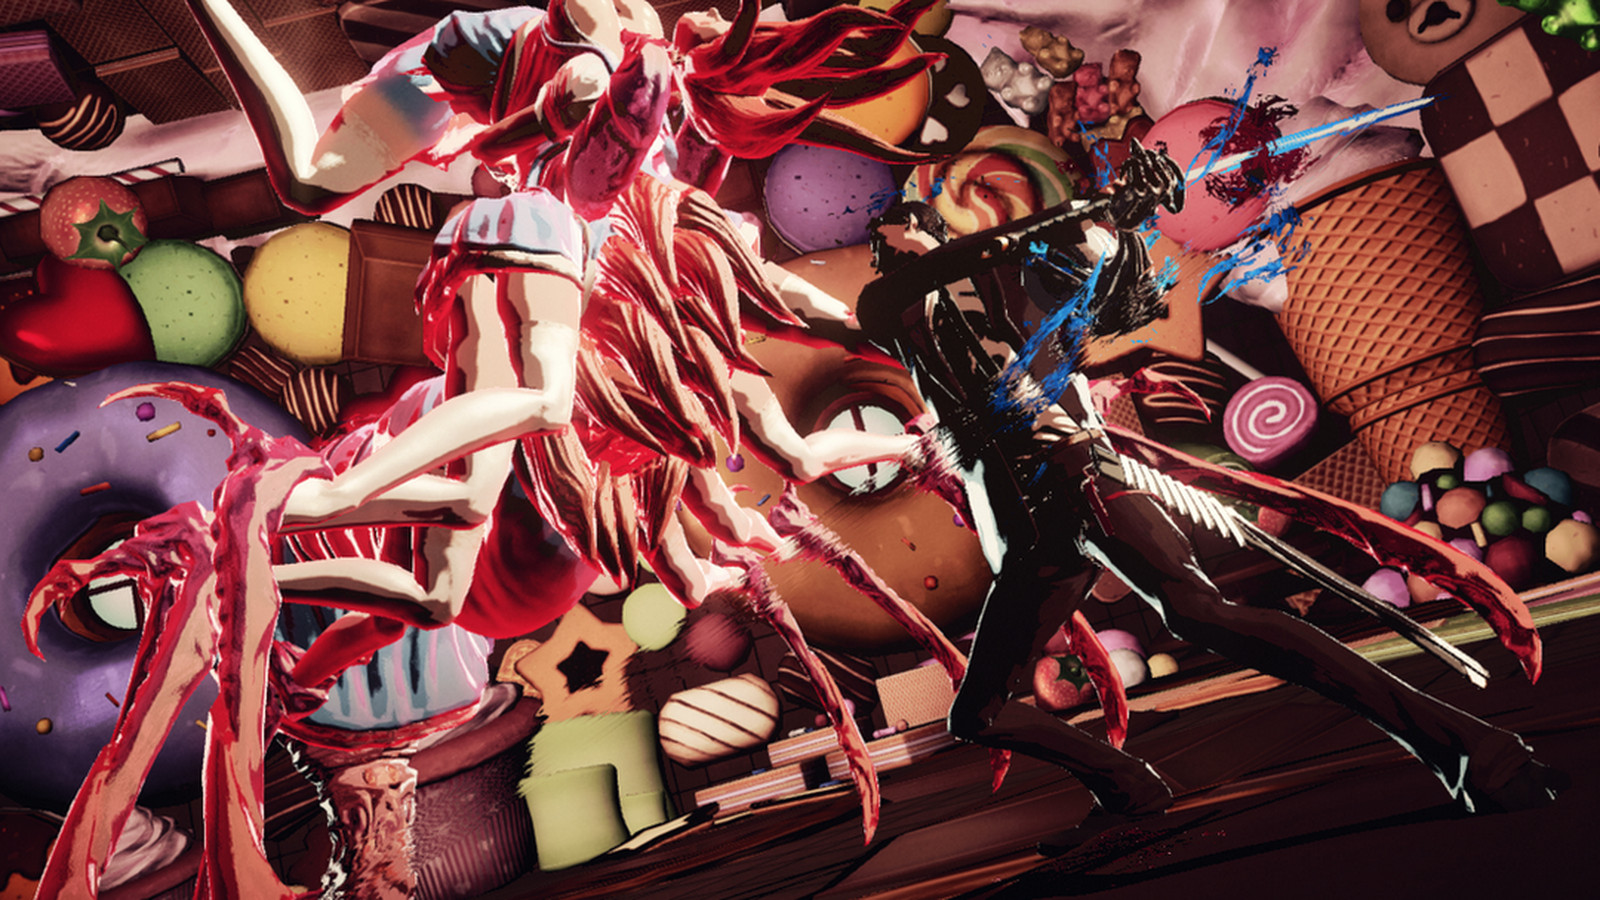 Killer is Dead will launch Aug. 27 with bonus items - Polygon